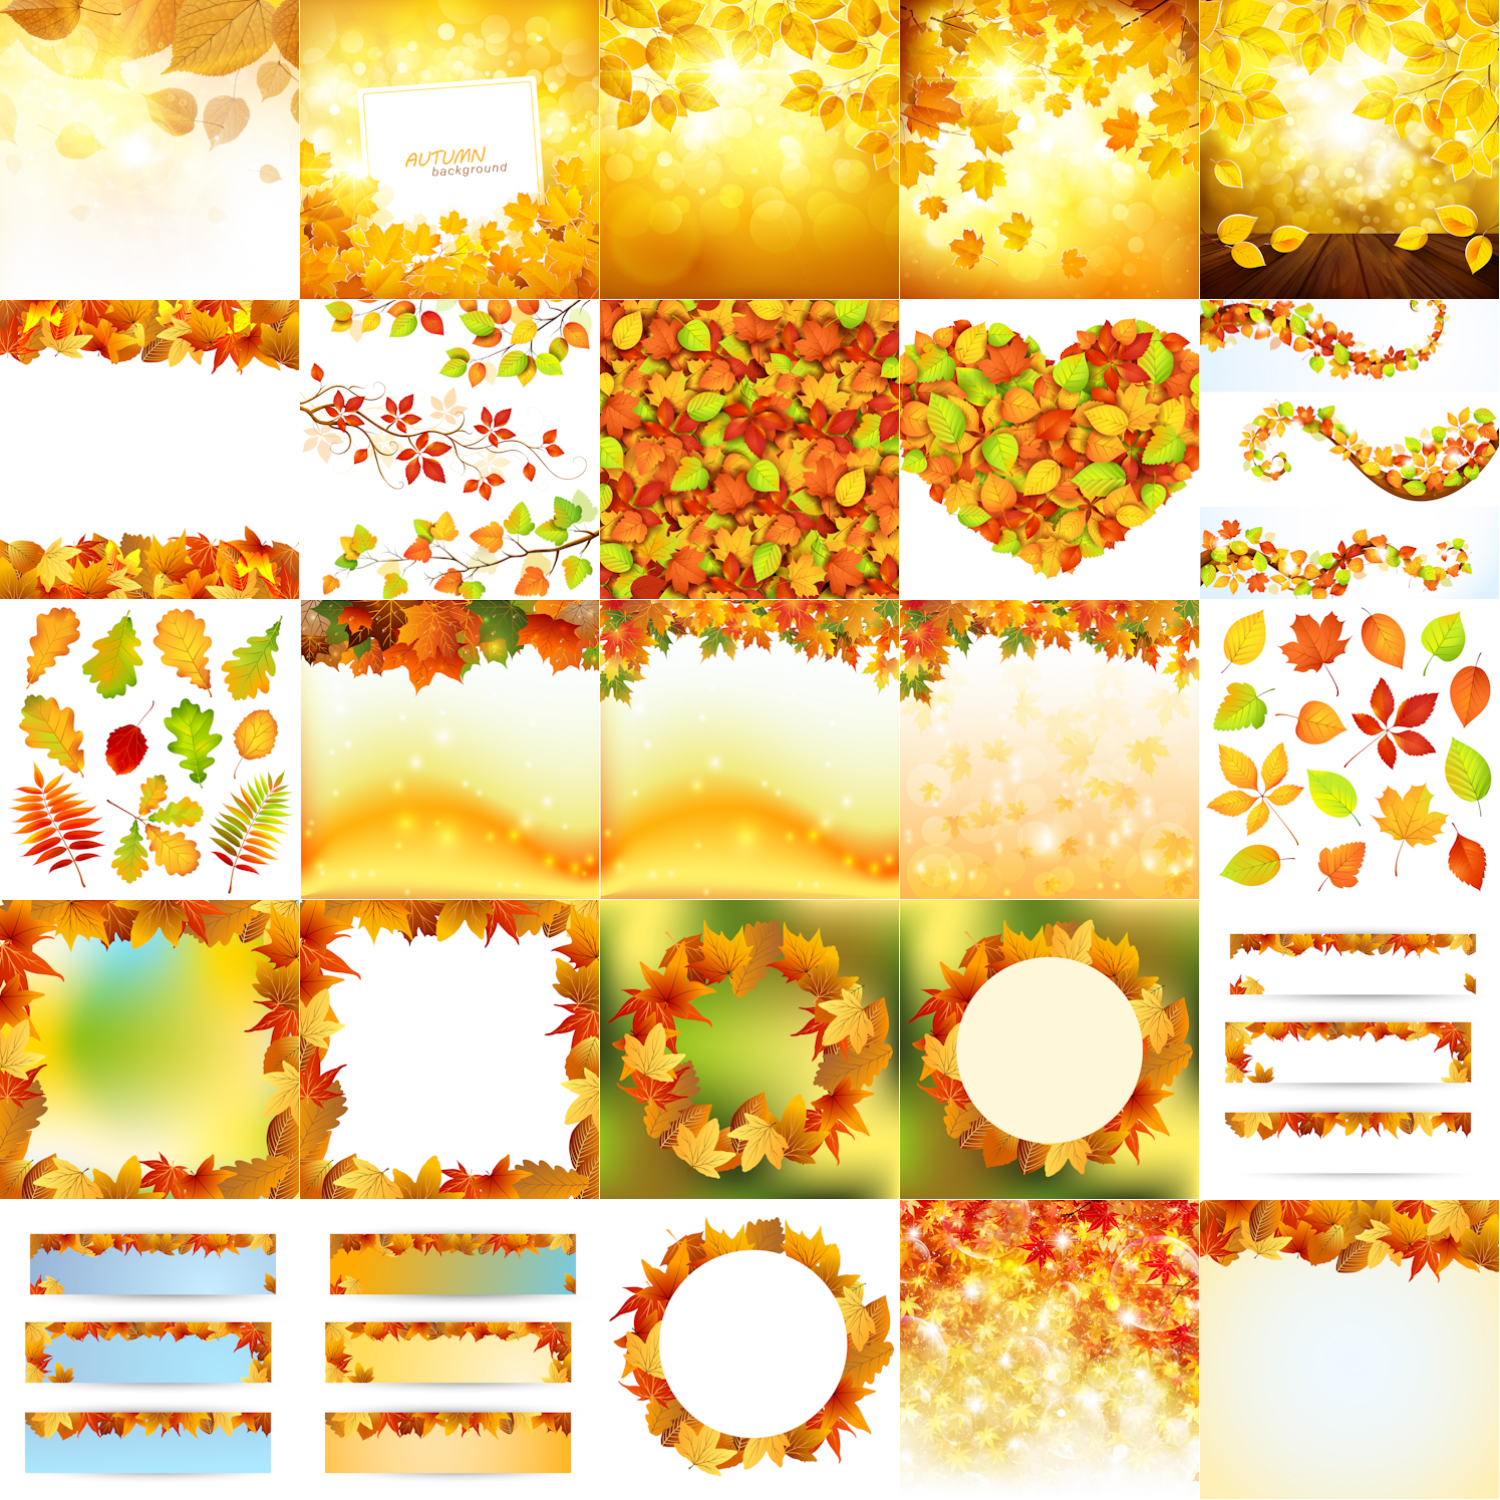 Autumn (fall) backgrounds with fallen yellow leaves, banners, templates, autumn leaves